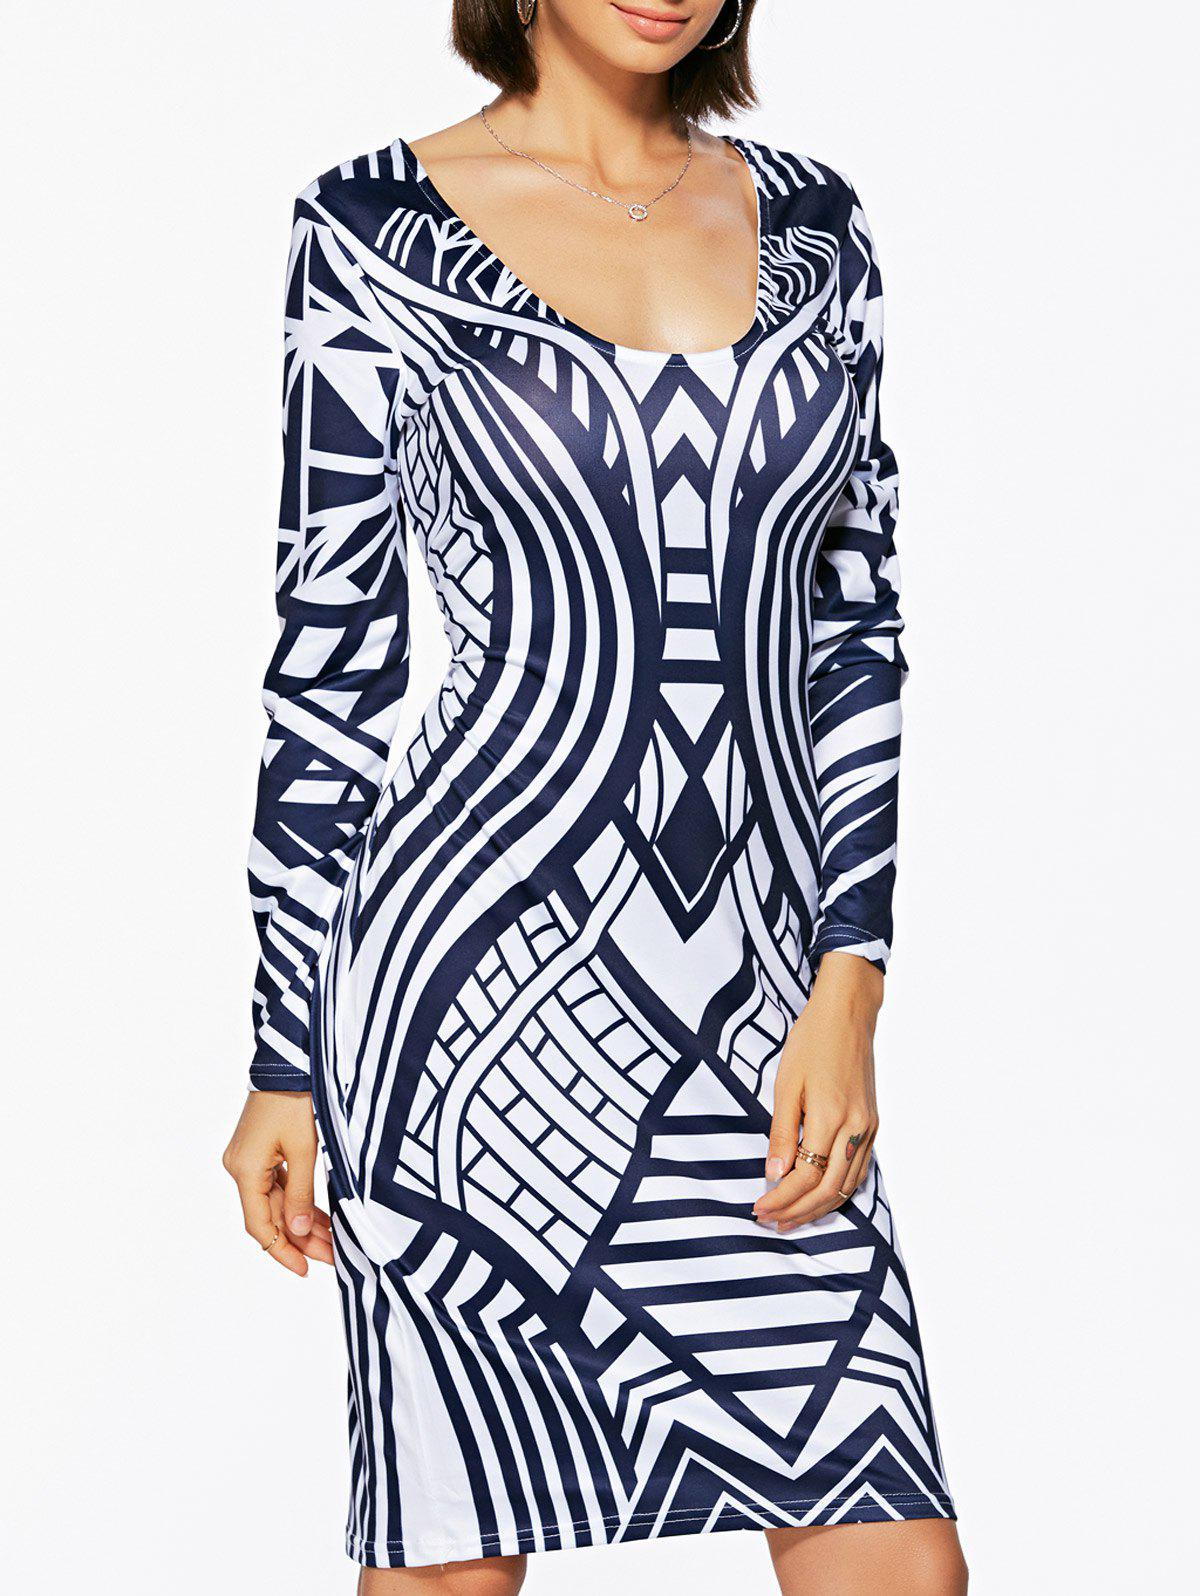 Bodycon Geometric Print Long Sleeve Scoop Neck Women's Dress - PURPLISH BLUE L